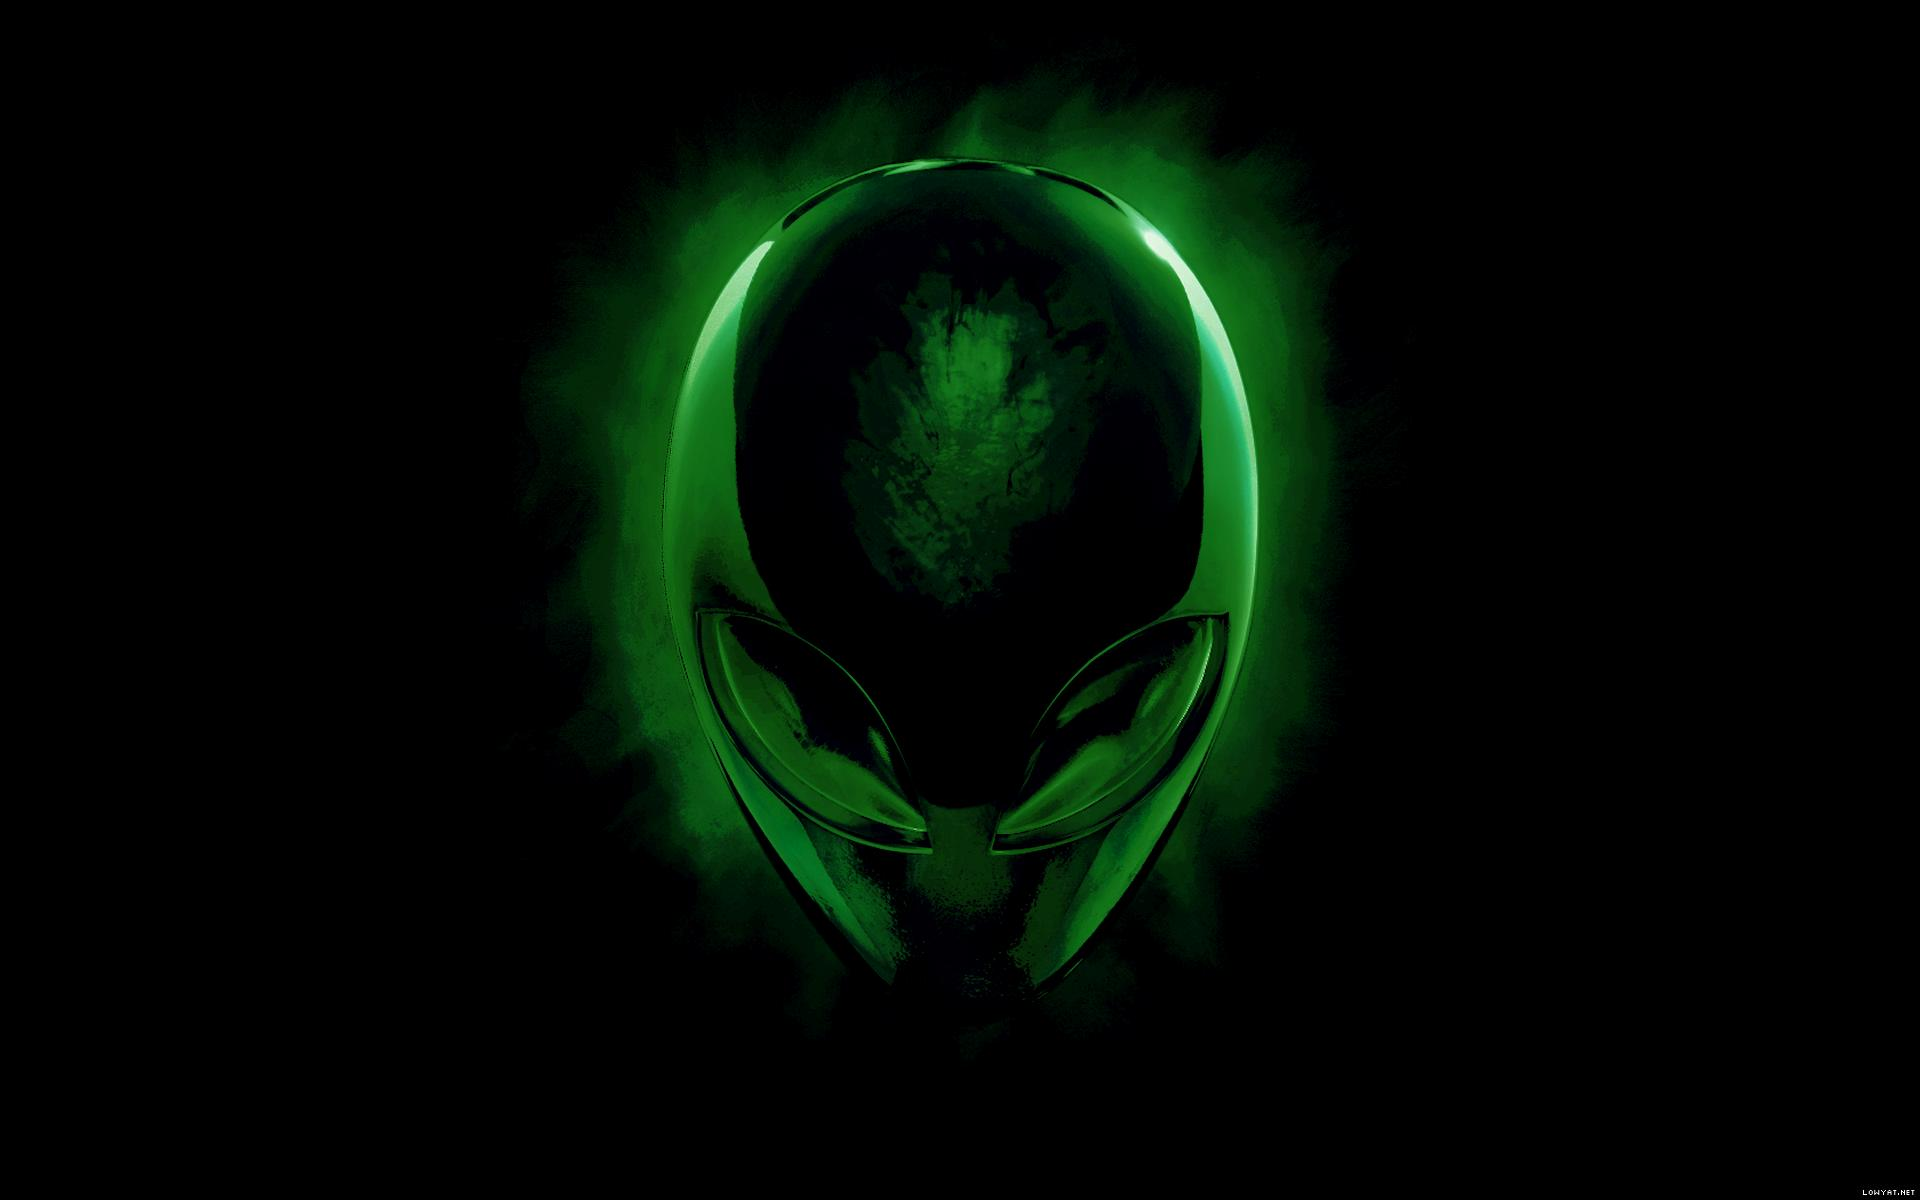 alienware desktop background alien head green 1920x1200